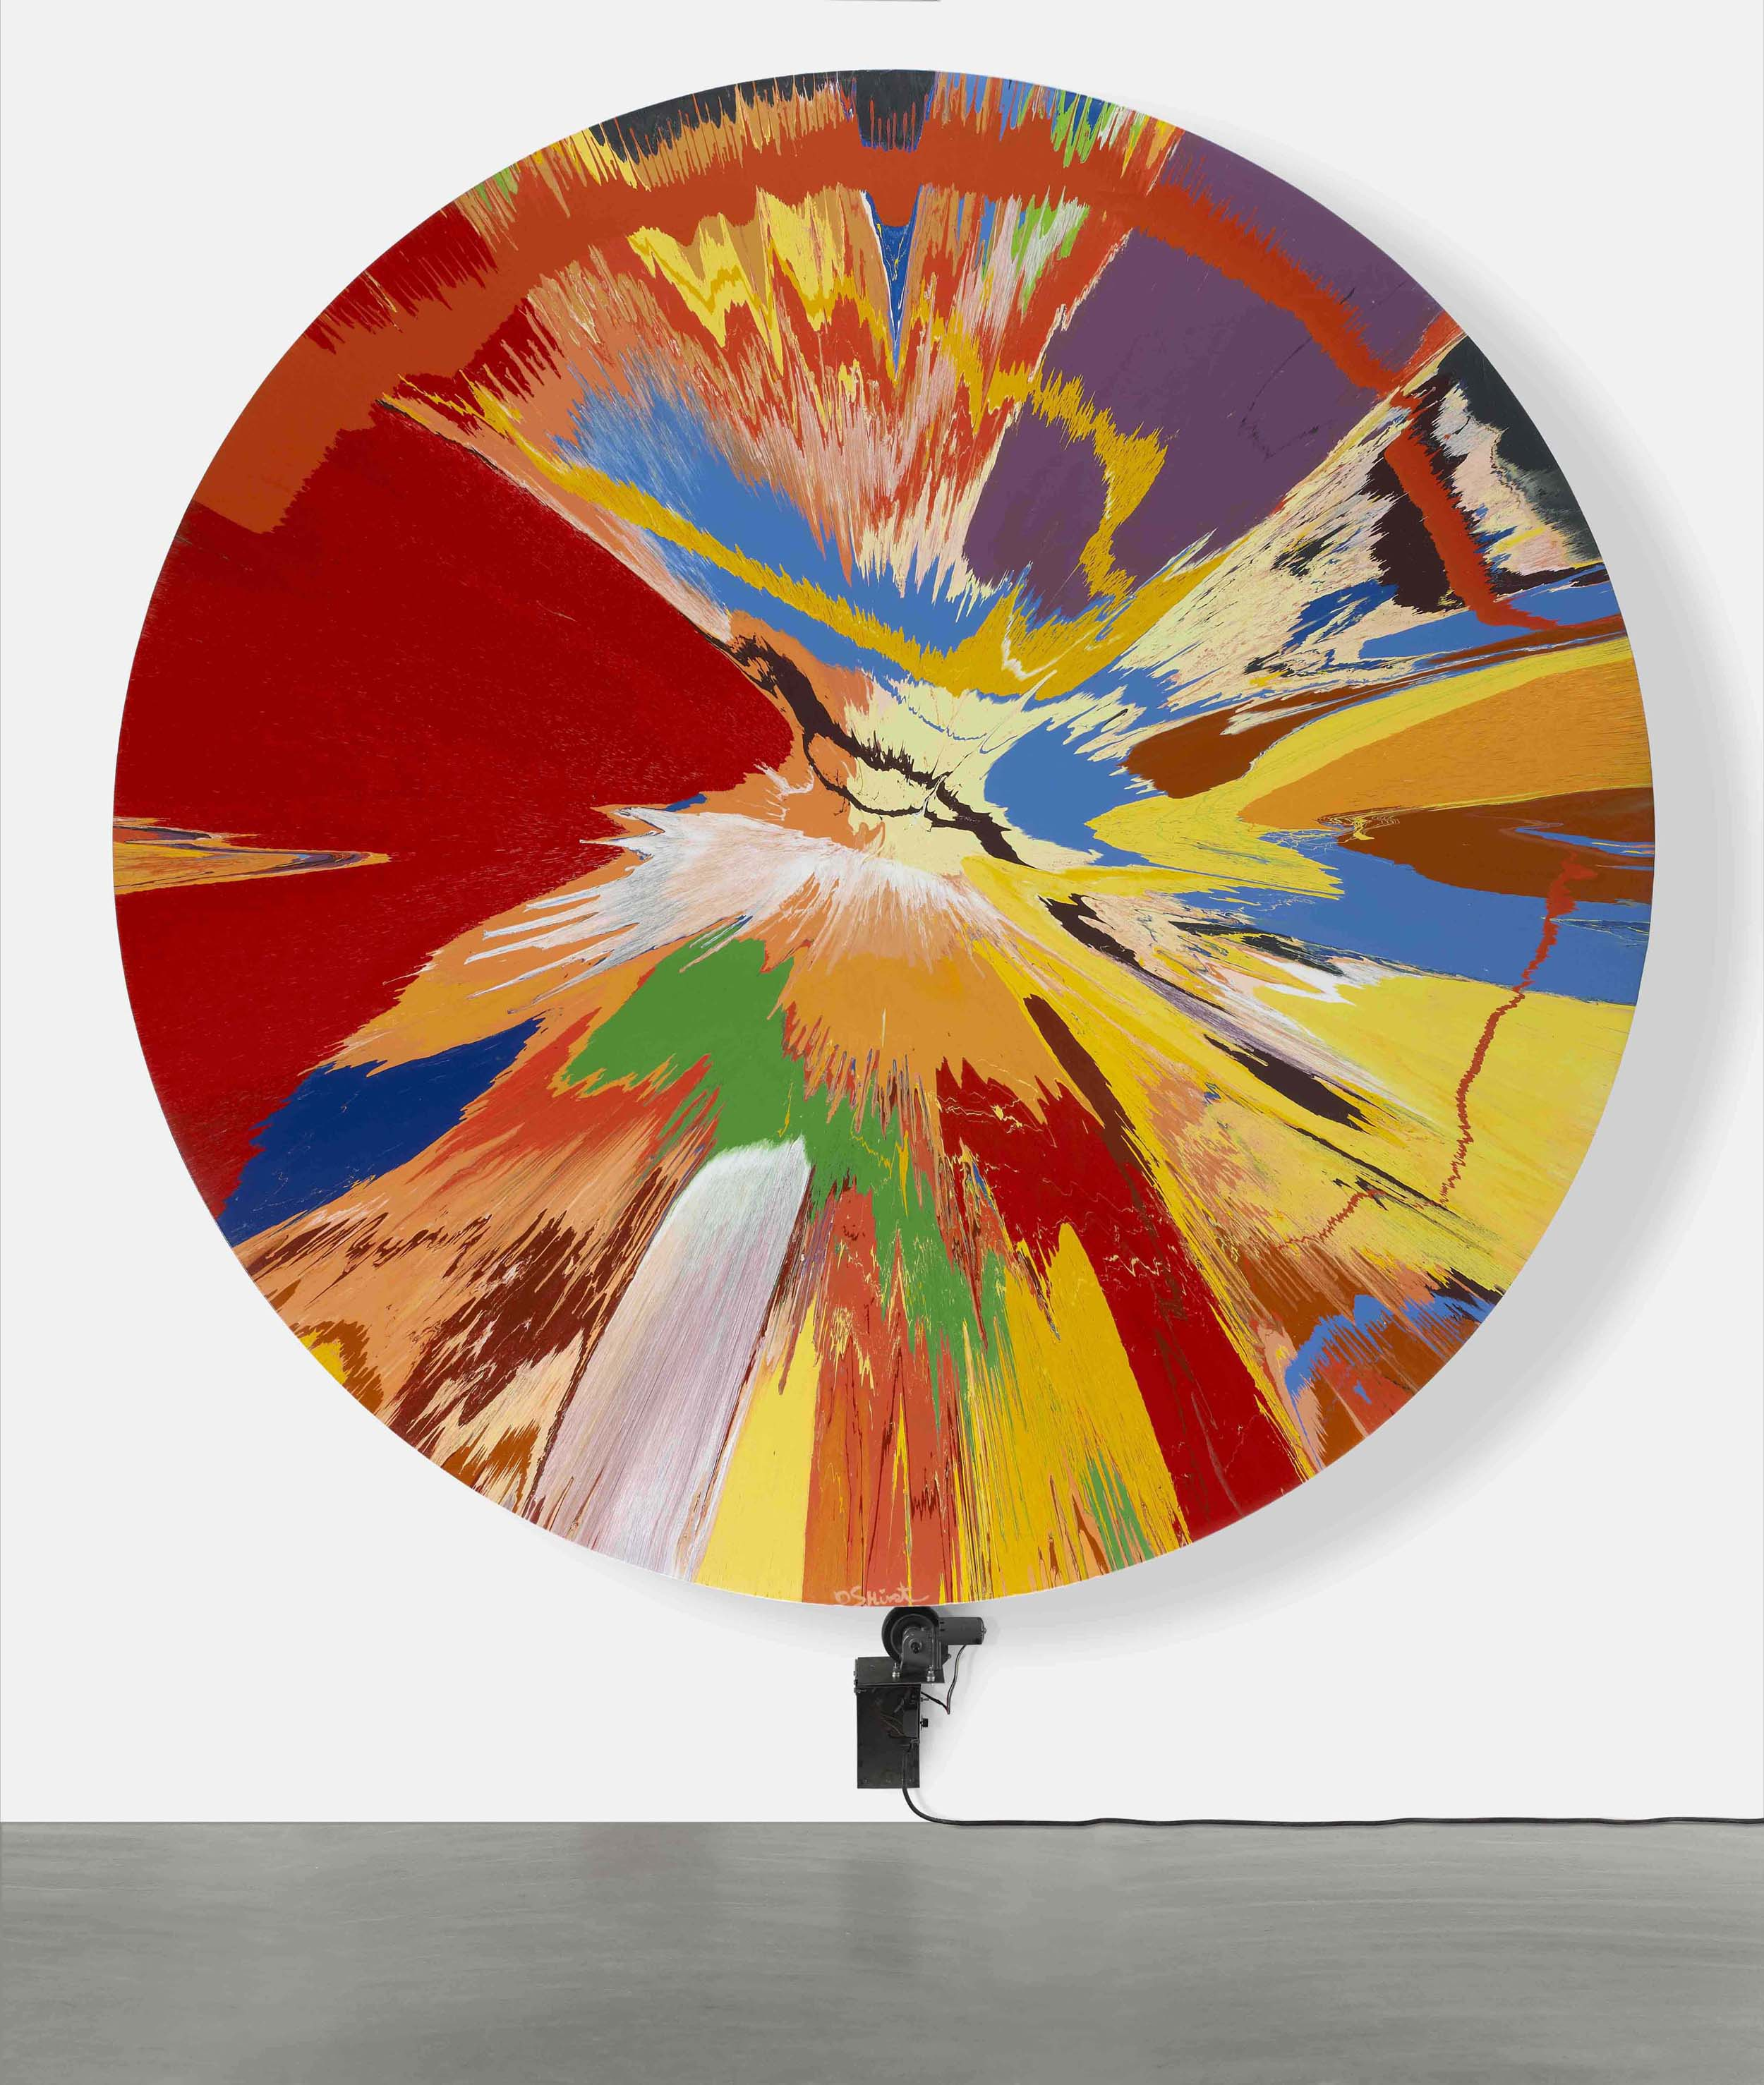 Damien Hirst - Beautiful, childish, expressive, tasteless, not art, over simplistic, throw away… - 1996